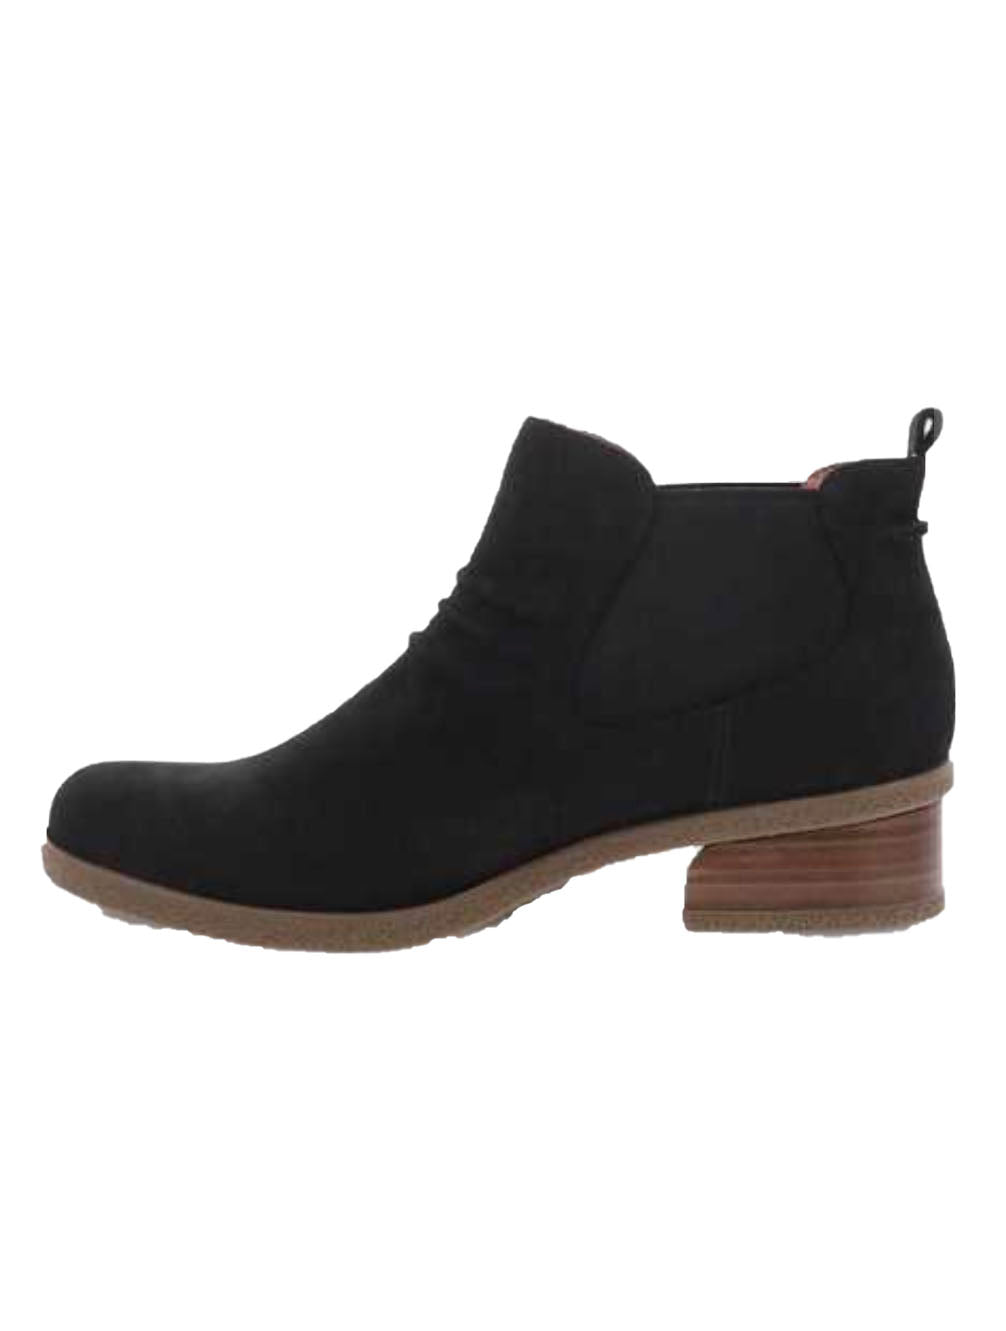 Dansko Bea V Cut Boot in Black